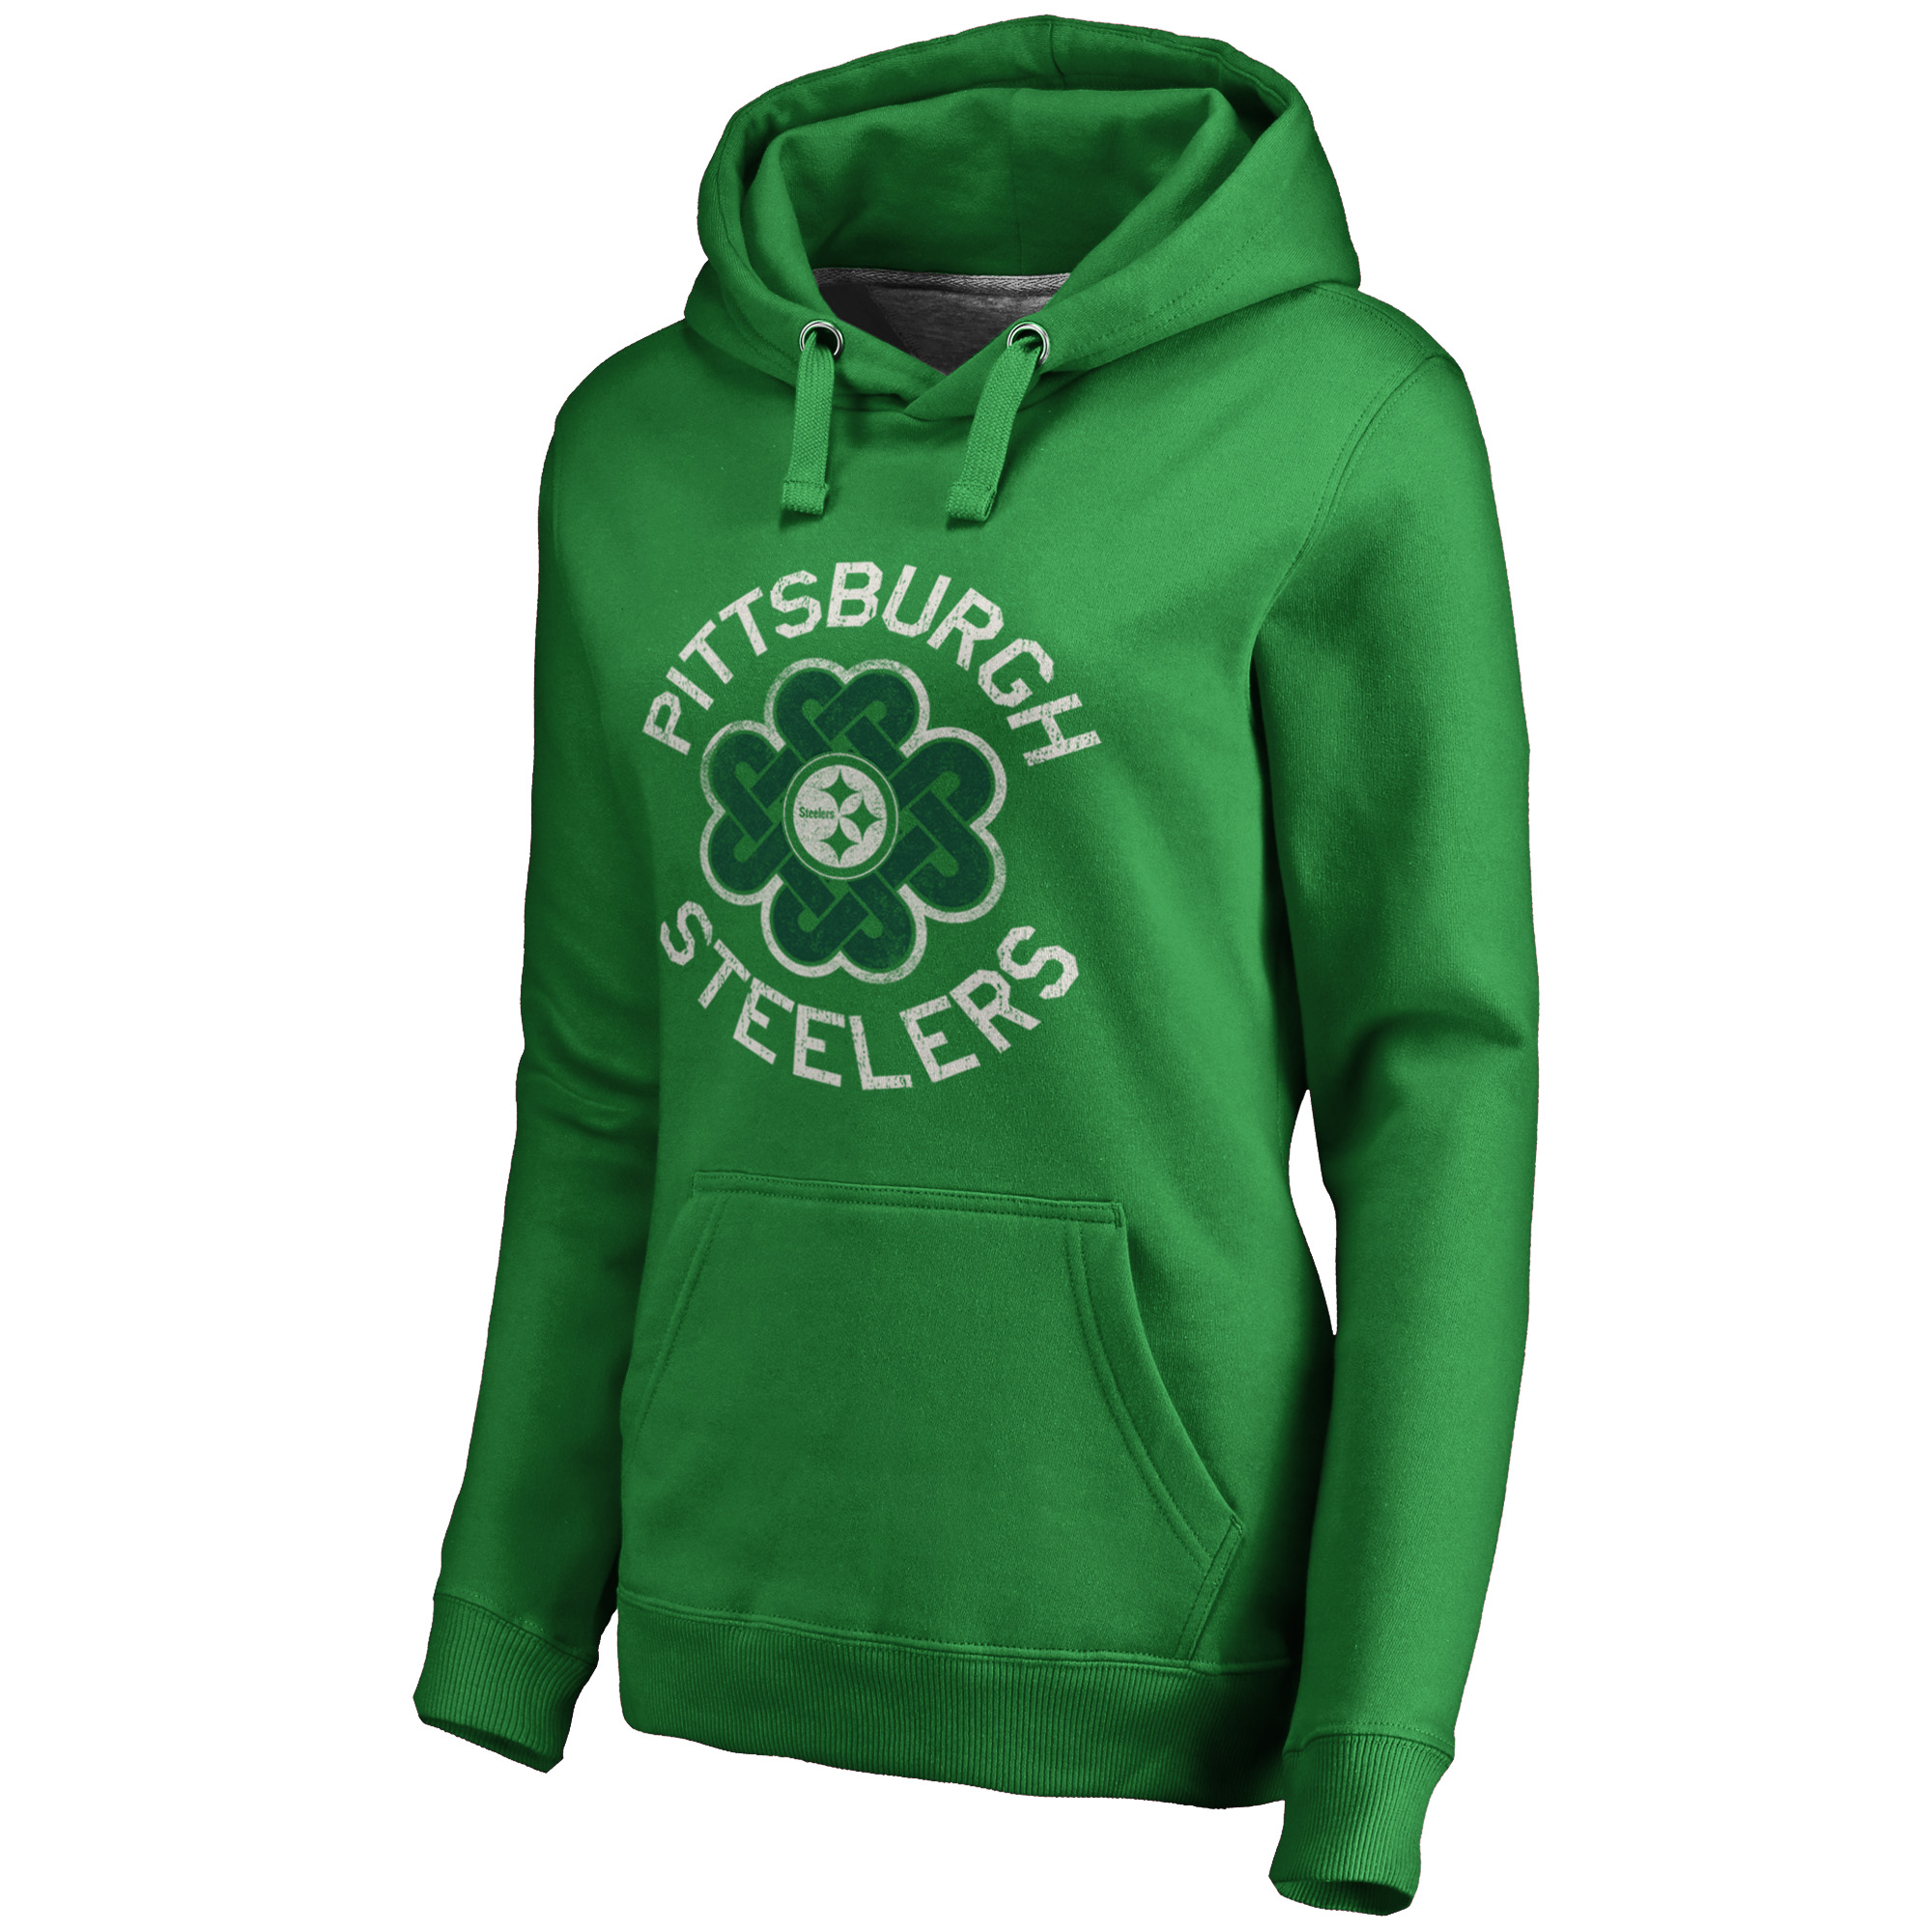 on sale 35a1d e9eef Pittsburgh Steelers NFL Pro Line by Fanatics Branded Women's St. Patrick's  Day Luck Tradition Pullover Hoodie - Kelly